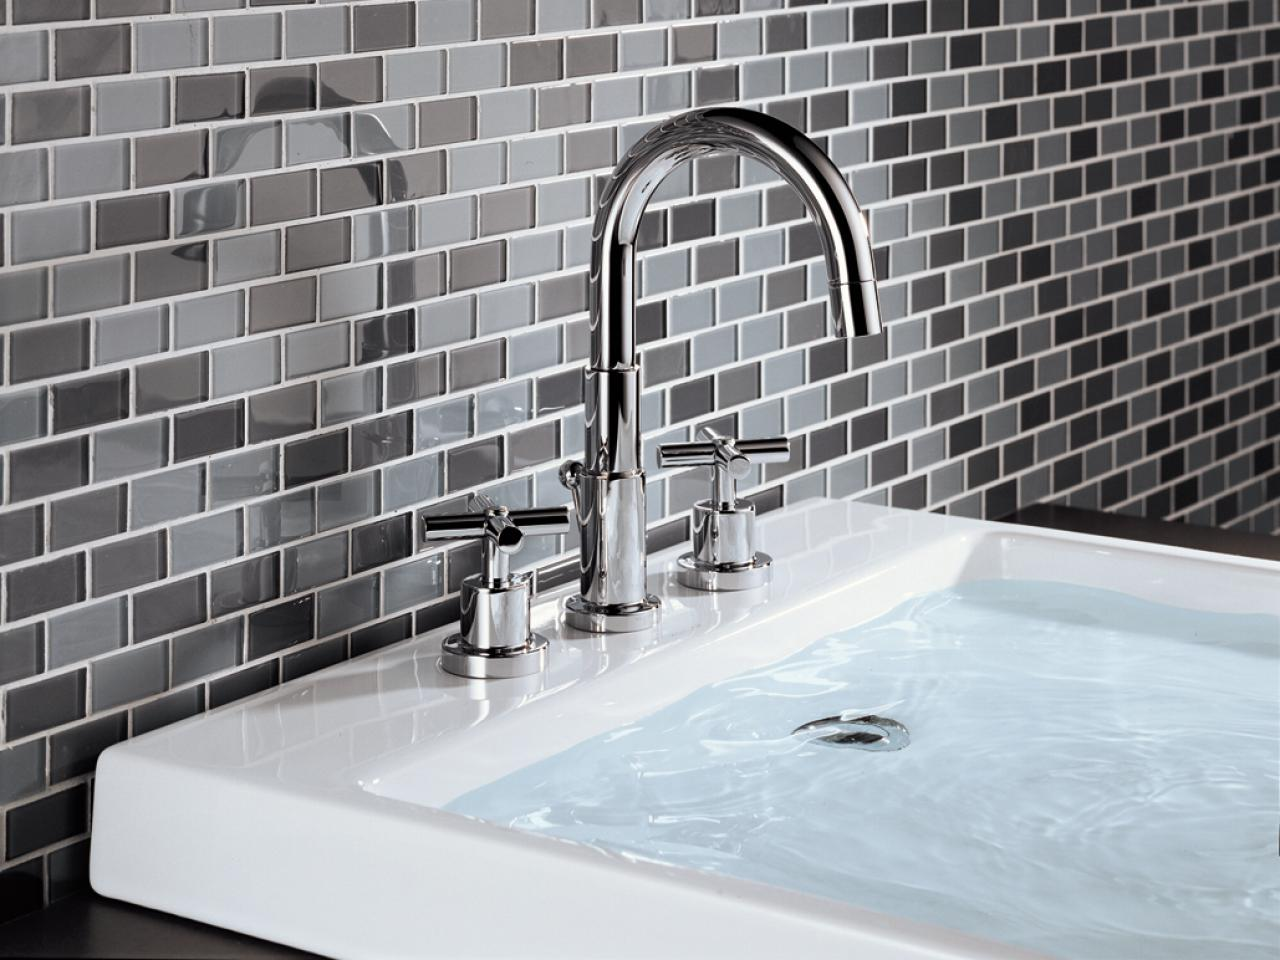 Choosing the Right Bathroom Taps to Match Your Suite